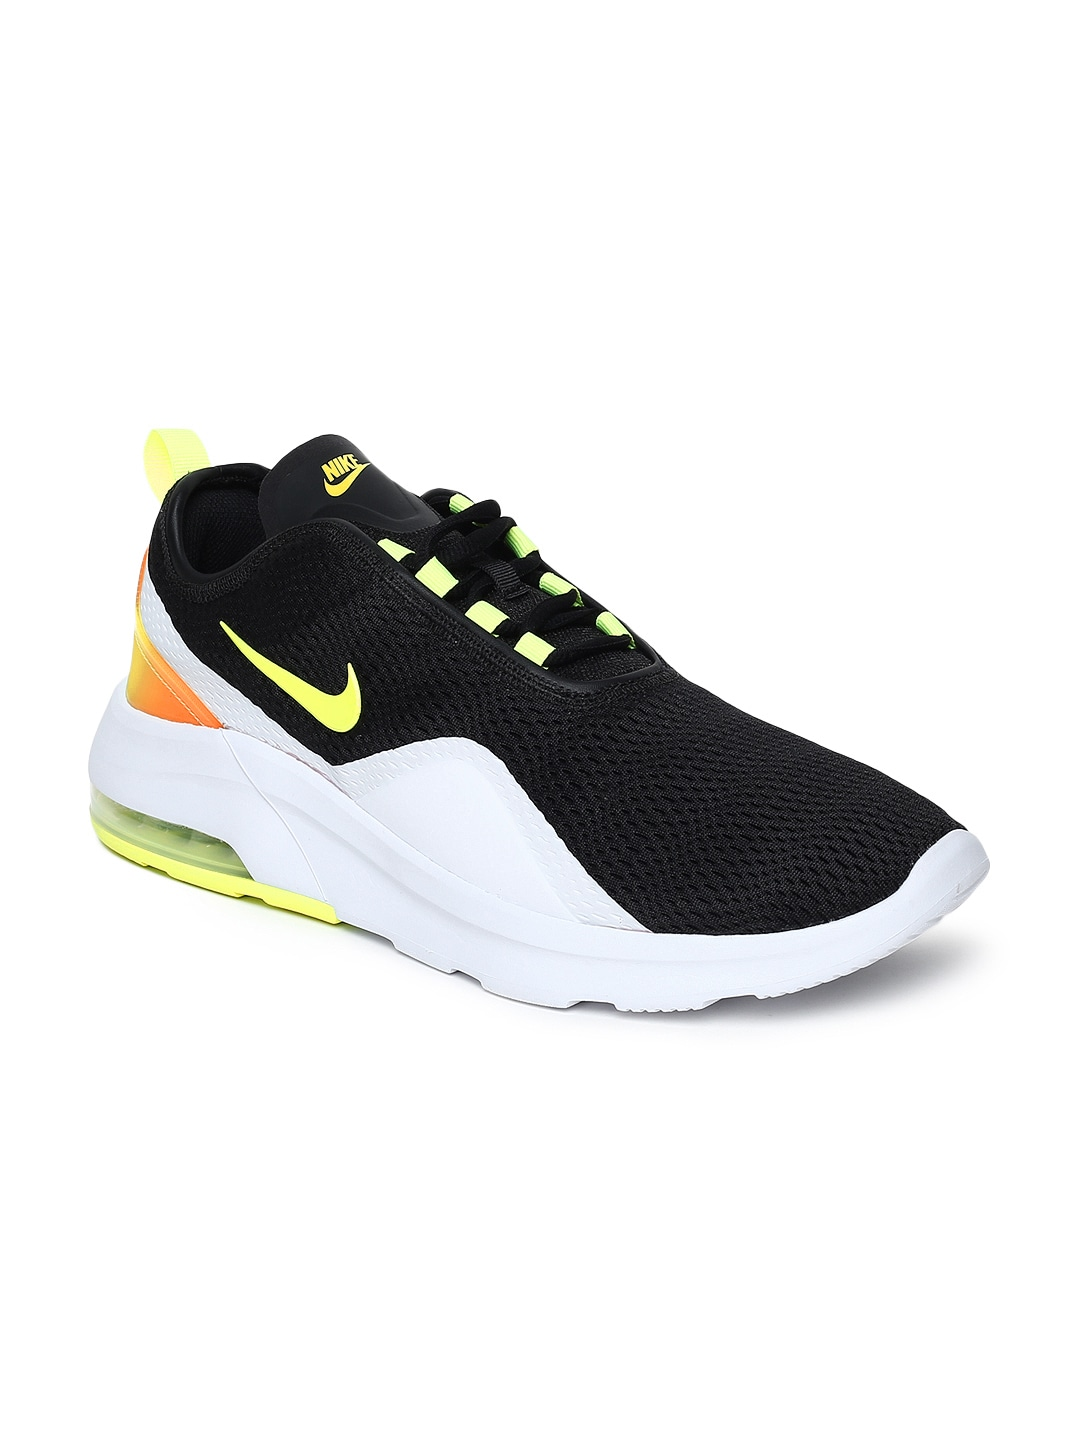 new style 84da5 dbd00 Nike Black Shoes - Buy Nike Black Shoes Online in India